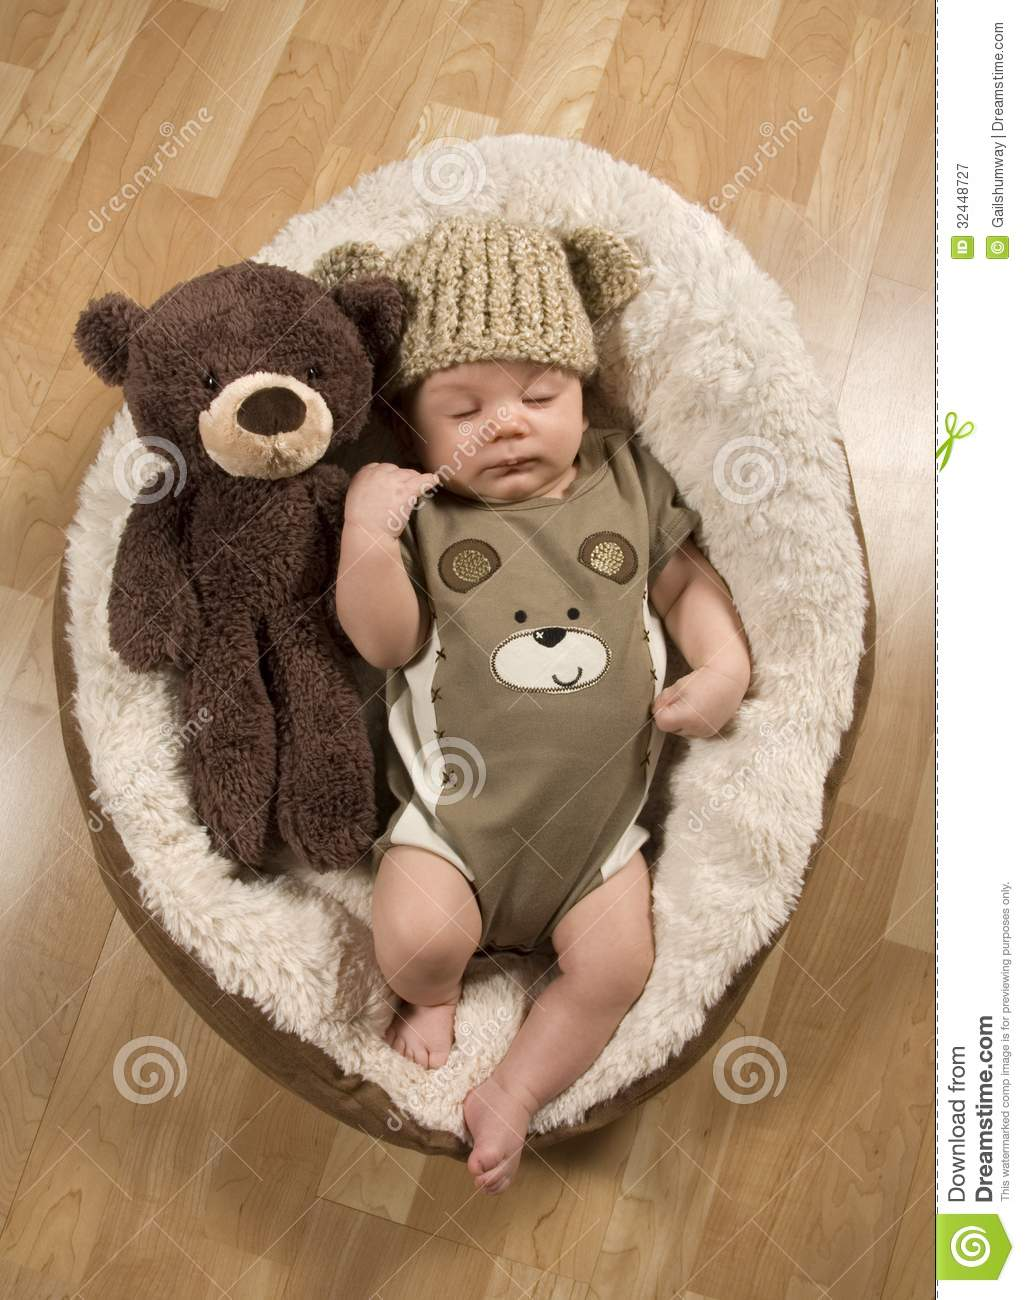 8350e9ad06c Baby boy 7 weeks old asleep on his back next to a teddy bear wearing a  teddy bear hat and romper.